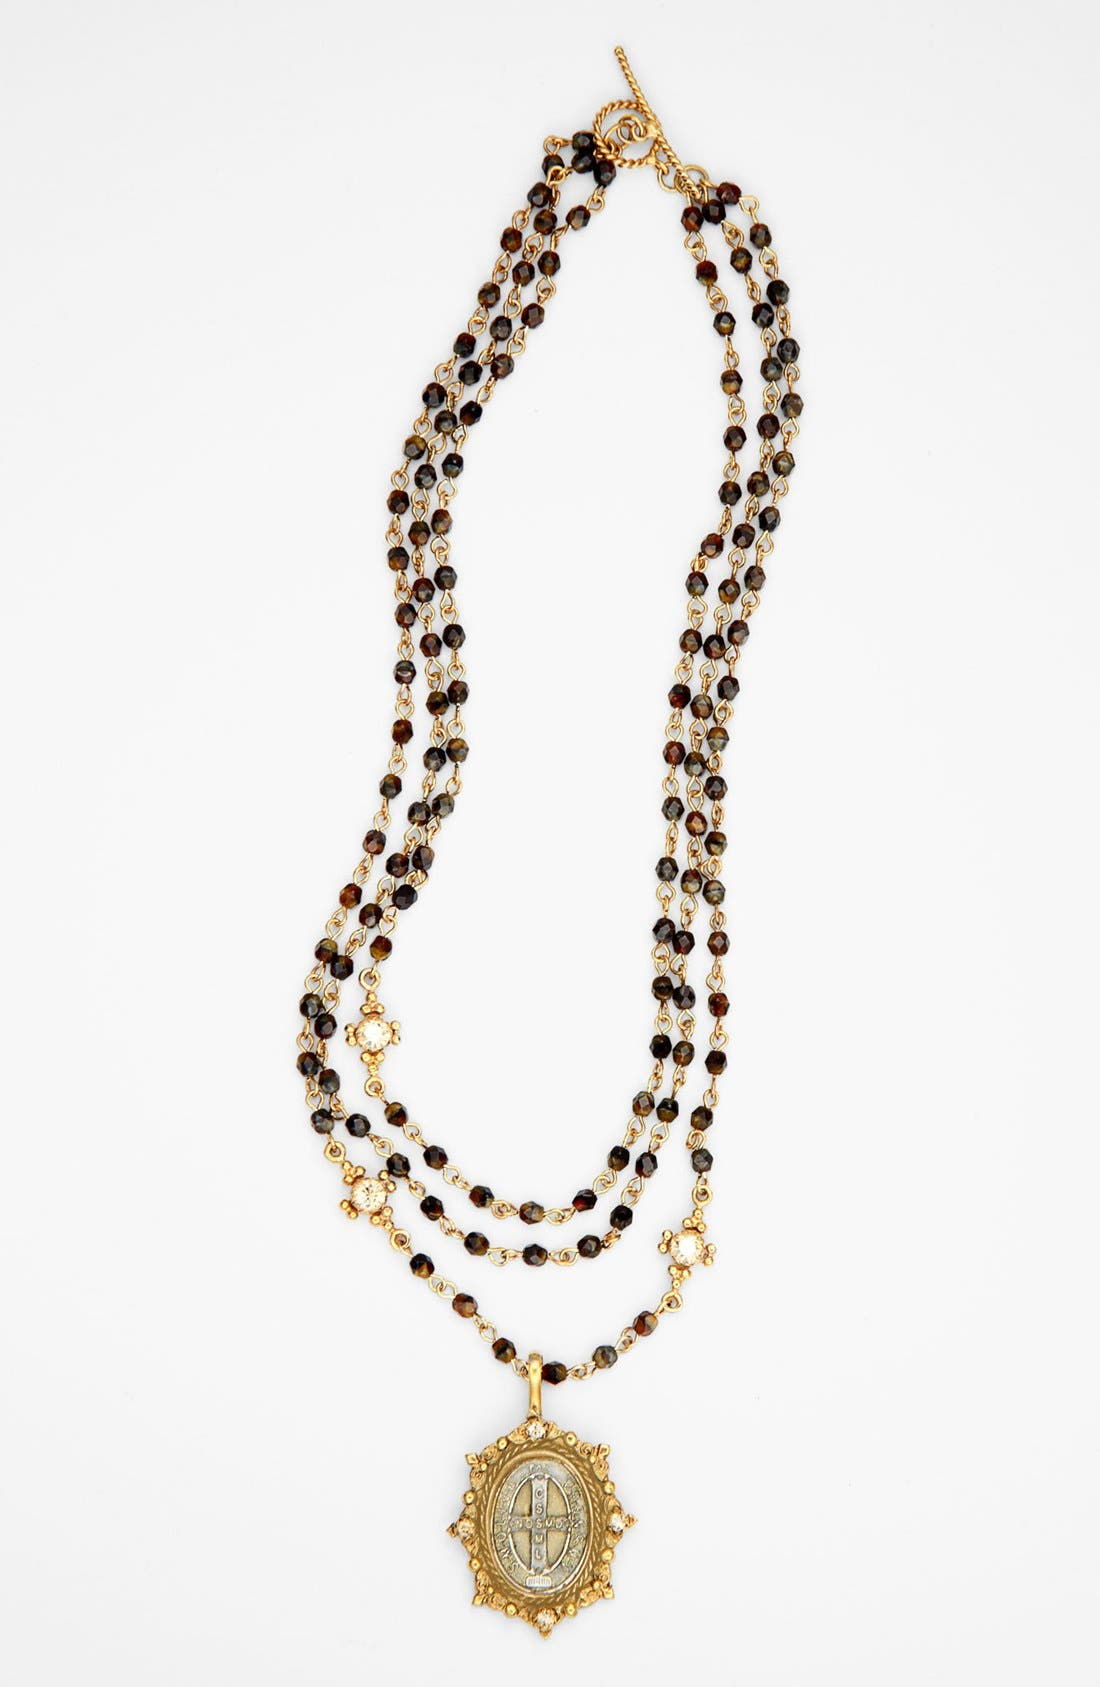 Main Image - Virgins Saints and Angels 'Tiger's Eye Oval Magdalena' Necklace (Nordstrom Exclusive)